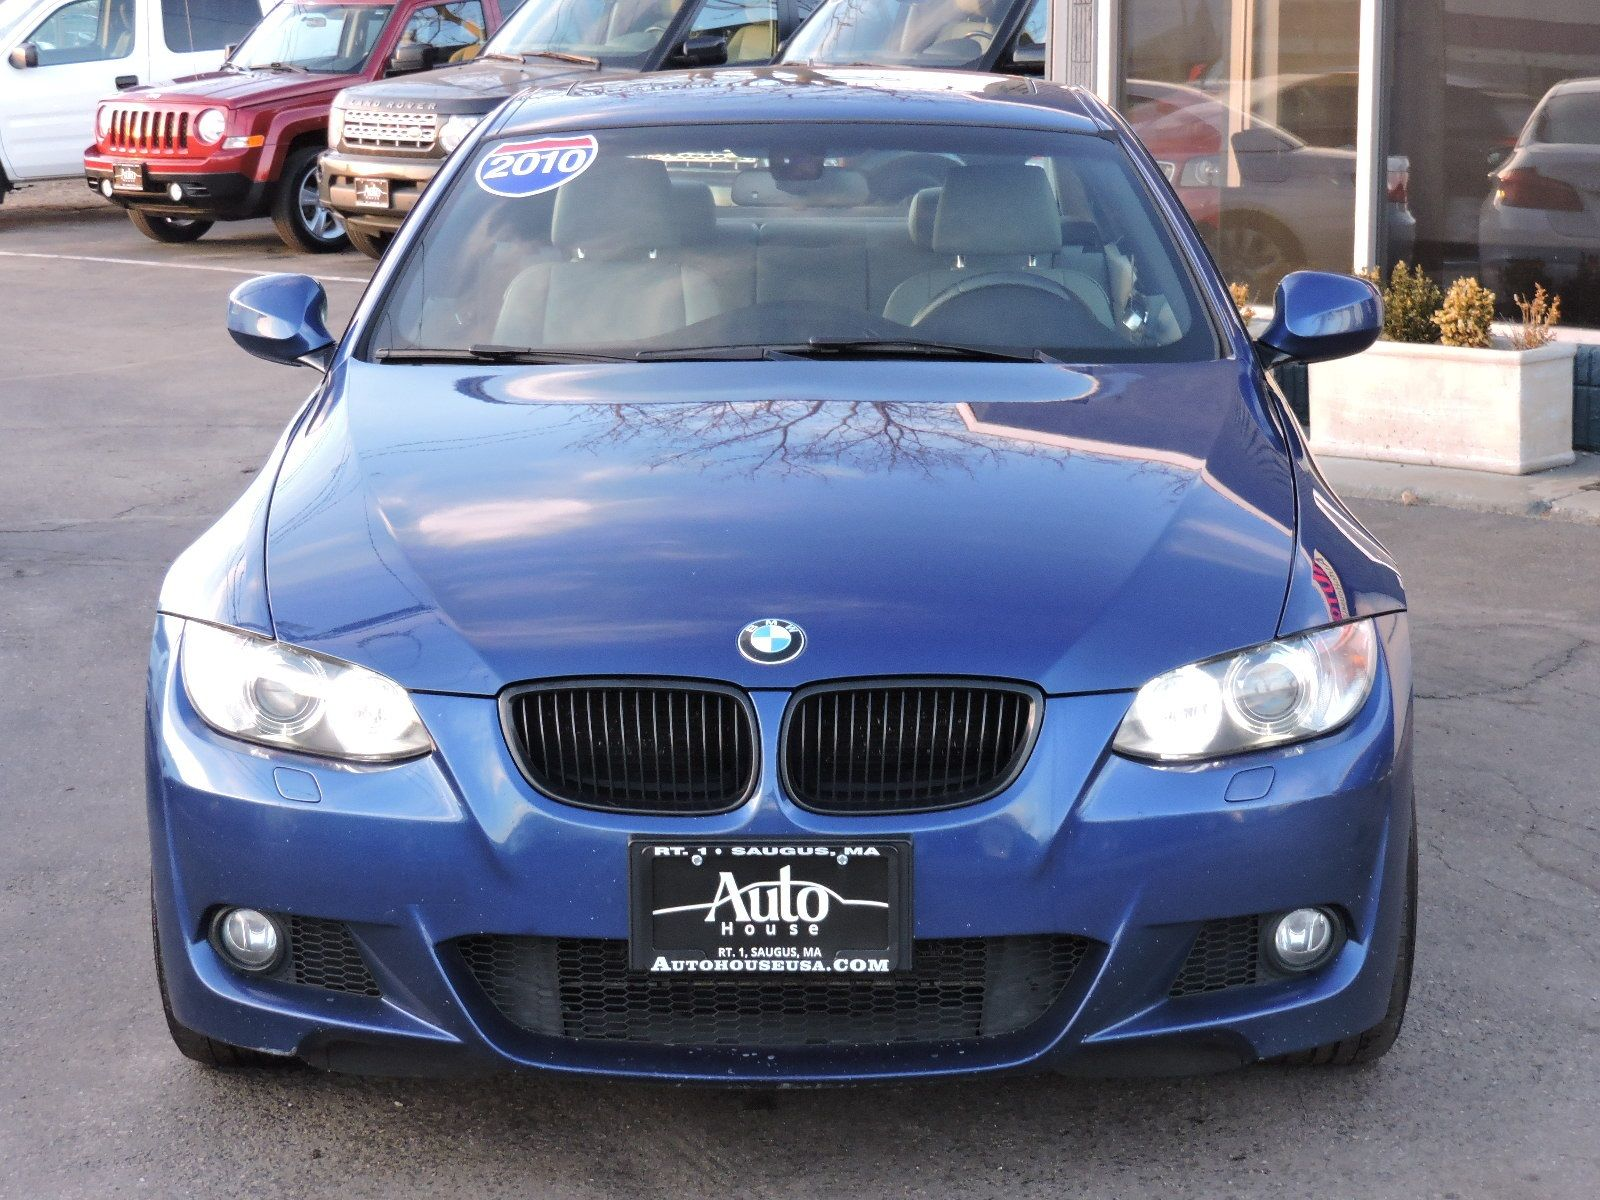 2010 BMW 3 Series 328i xDrive M SPORT 6 Speed AWD Coupe